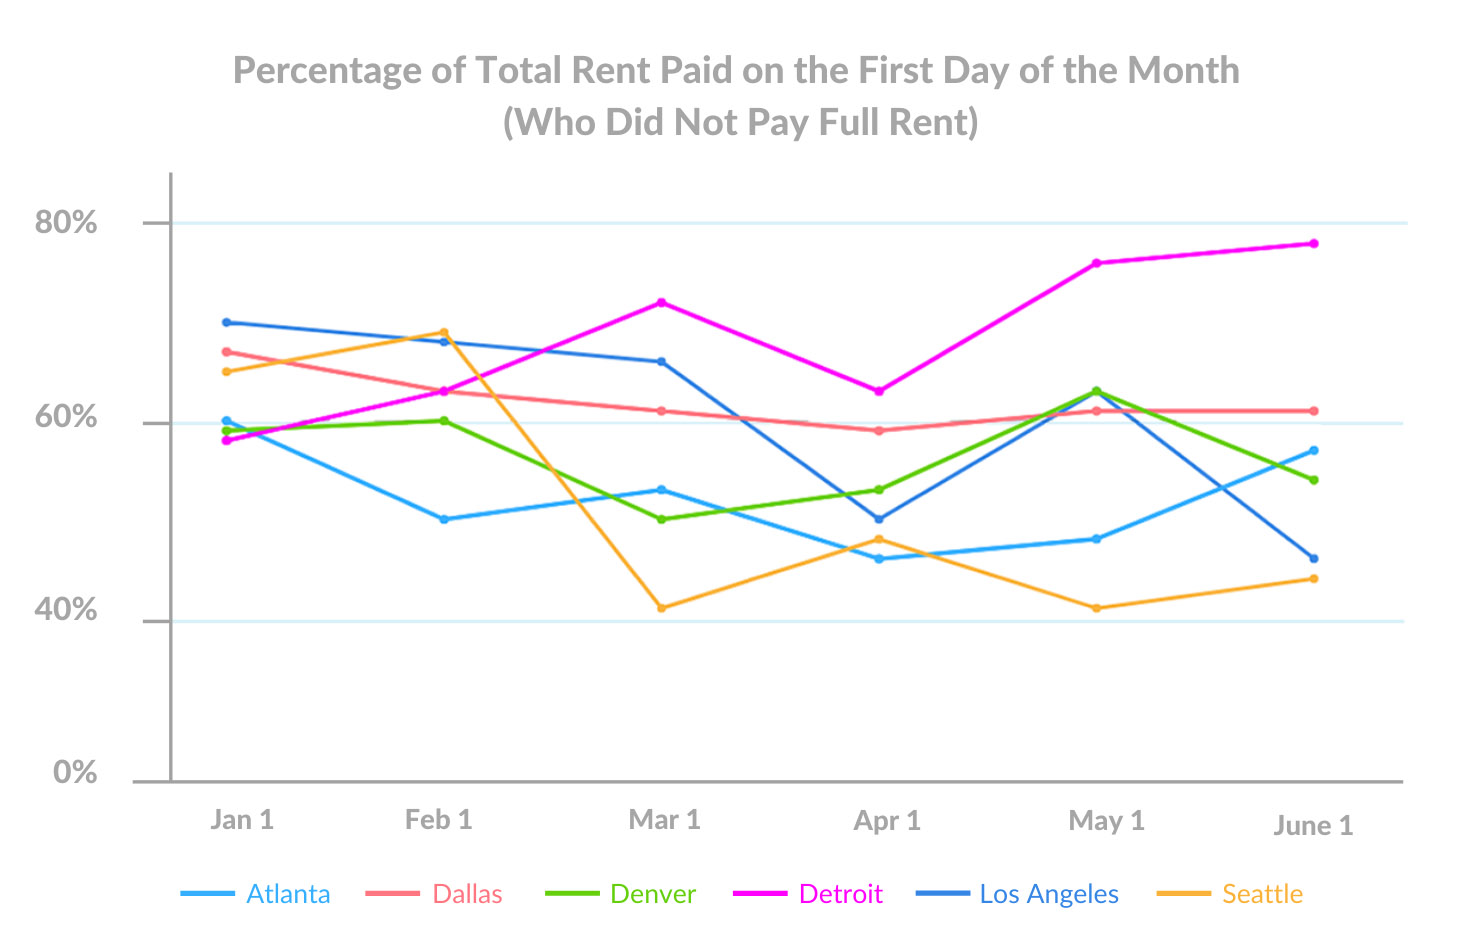 june 1st Percentage of Total Rent Paid on the First Day of the Month (Who Did Not Pay Full Rent)